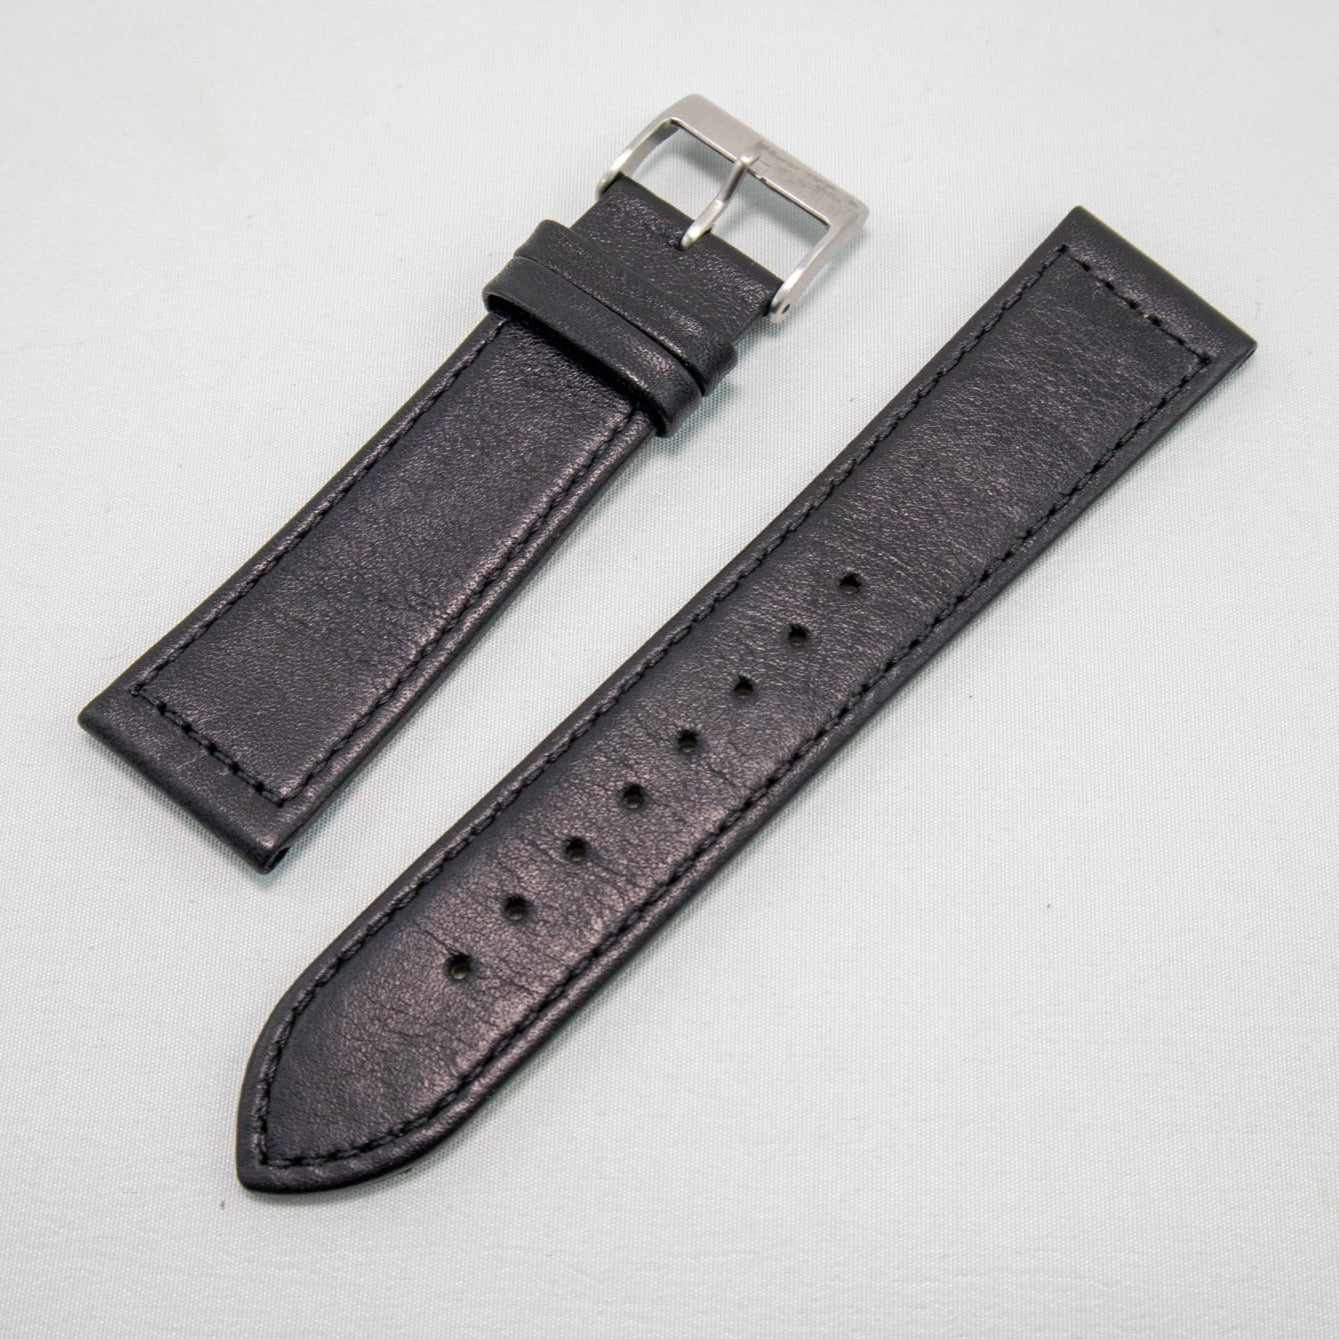 Alpine Watchstrap - Flat Stitched Leather